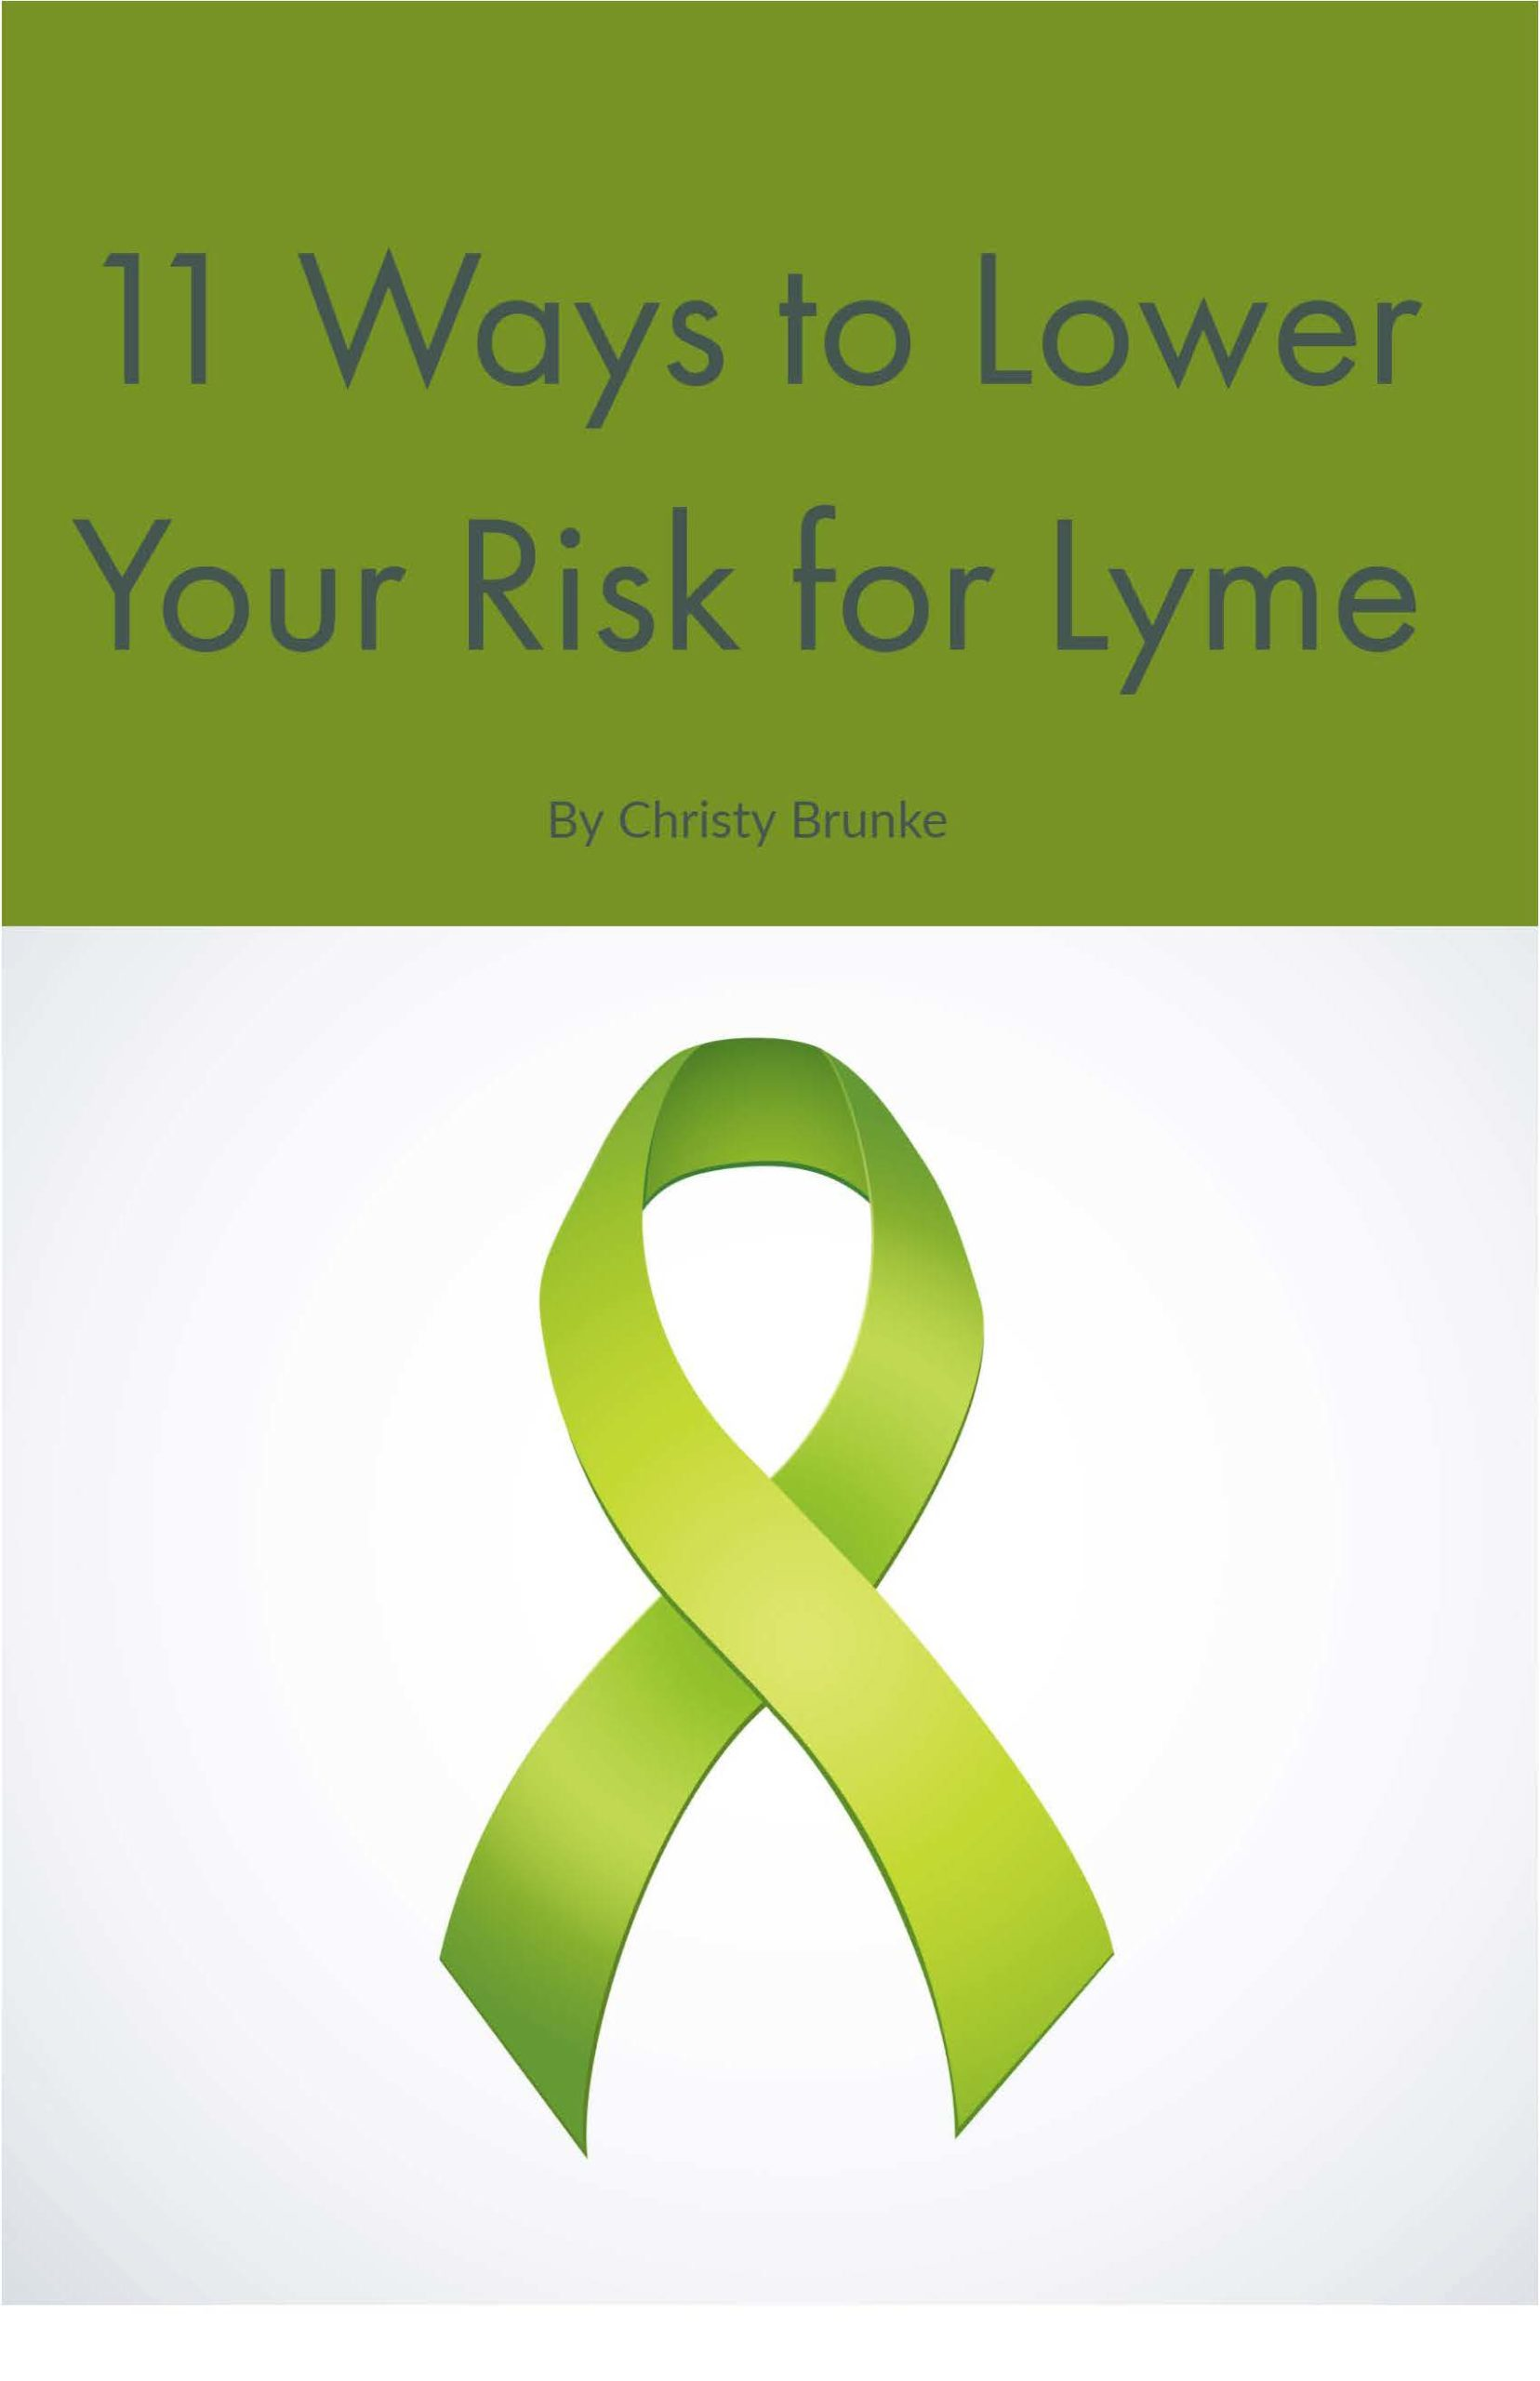 11 Ways to Lower Your Risk for Lyme